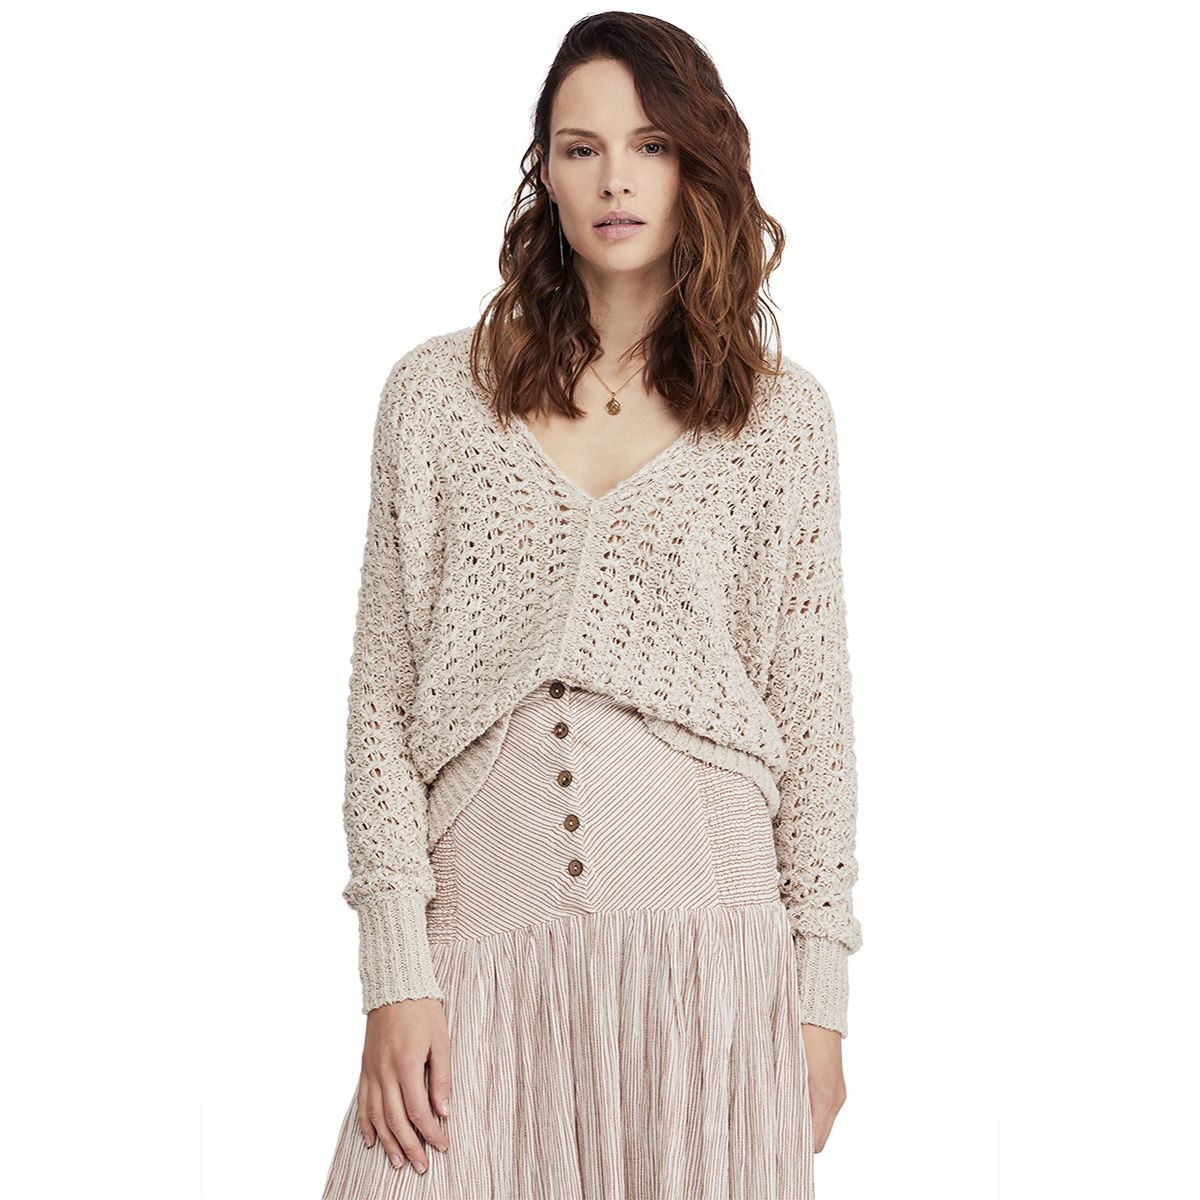 5eee254004d Free People Clothing - Womens Apparel - Macy s